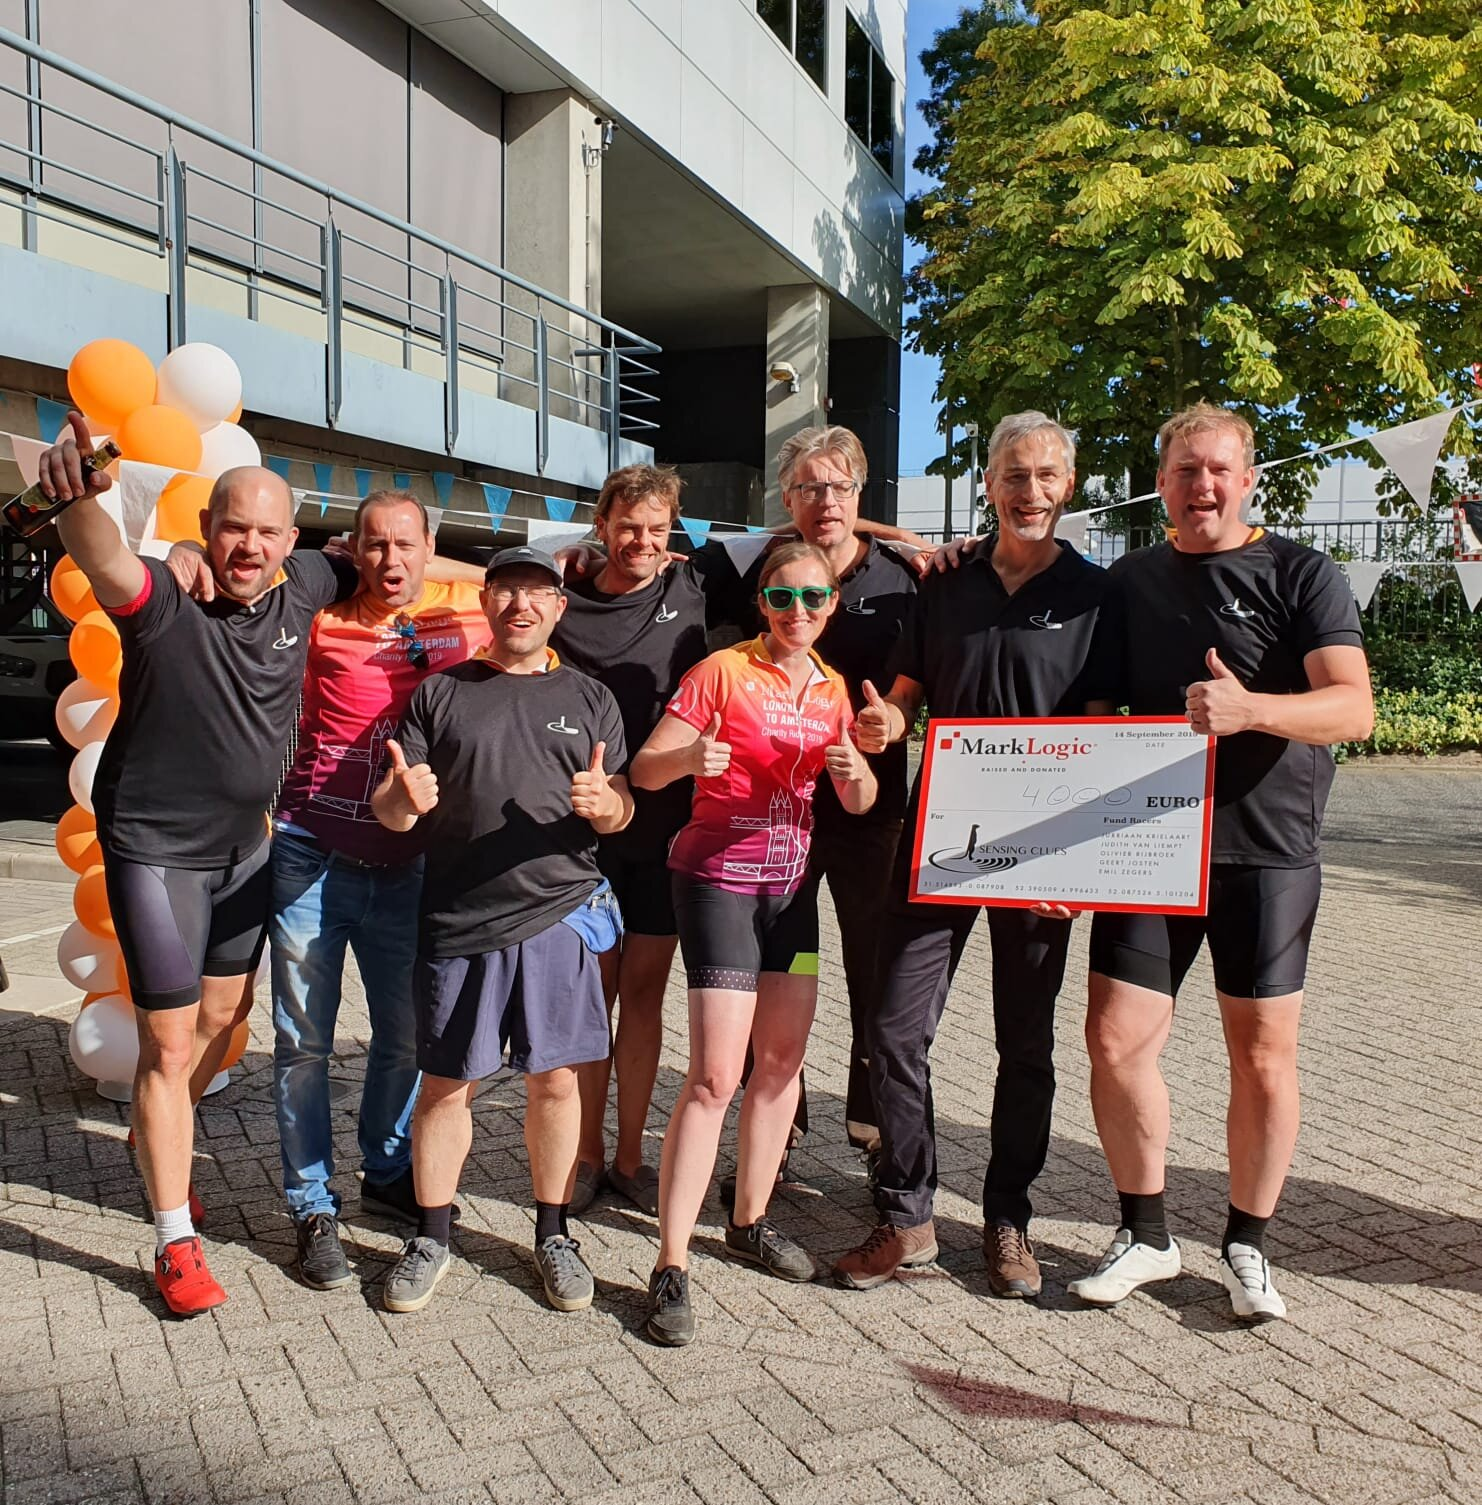 The Dutch MarkLogic team handing over the check to Jan Kees Schakel and Hugo Koopmans of Sensing Clues Foundation